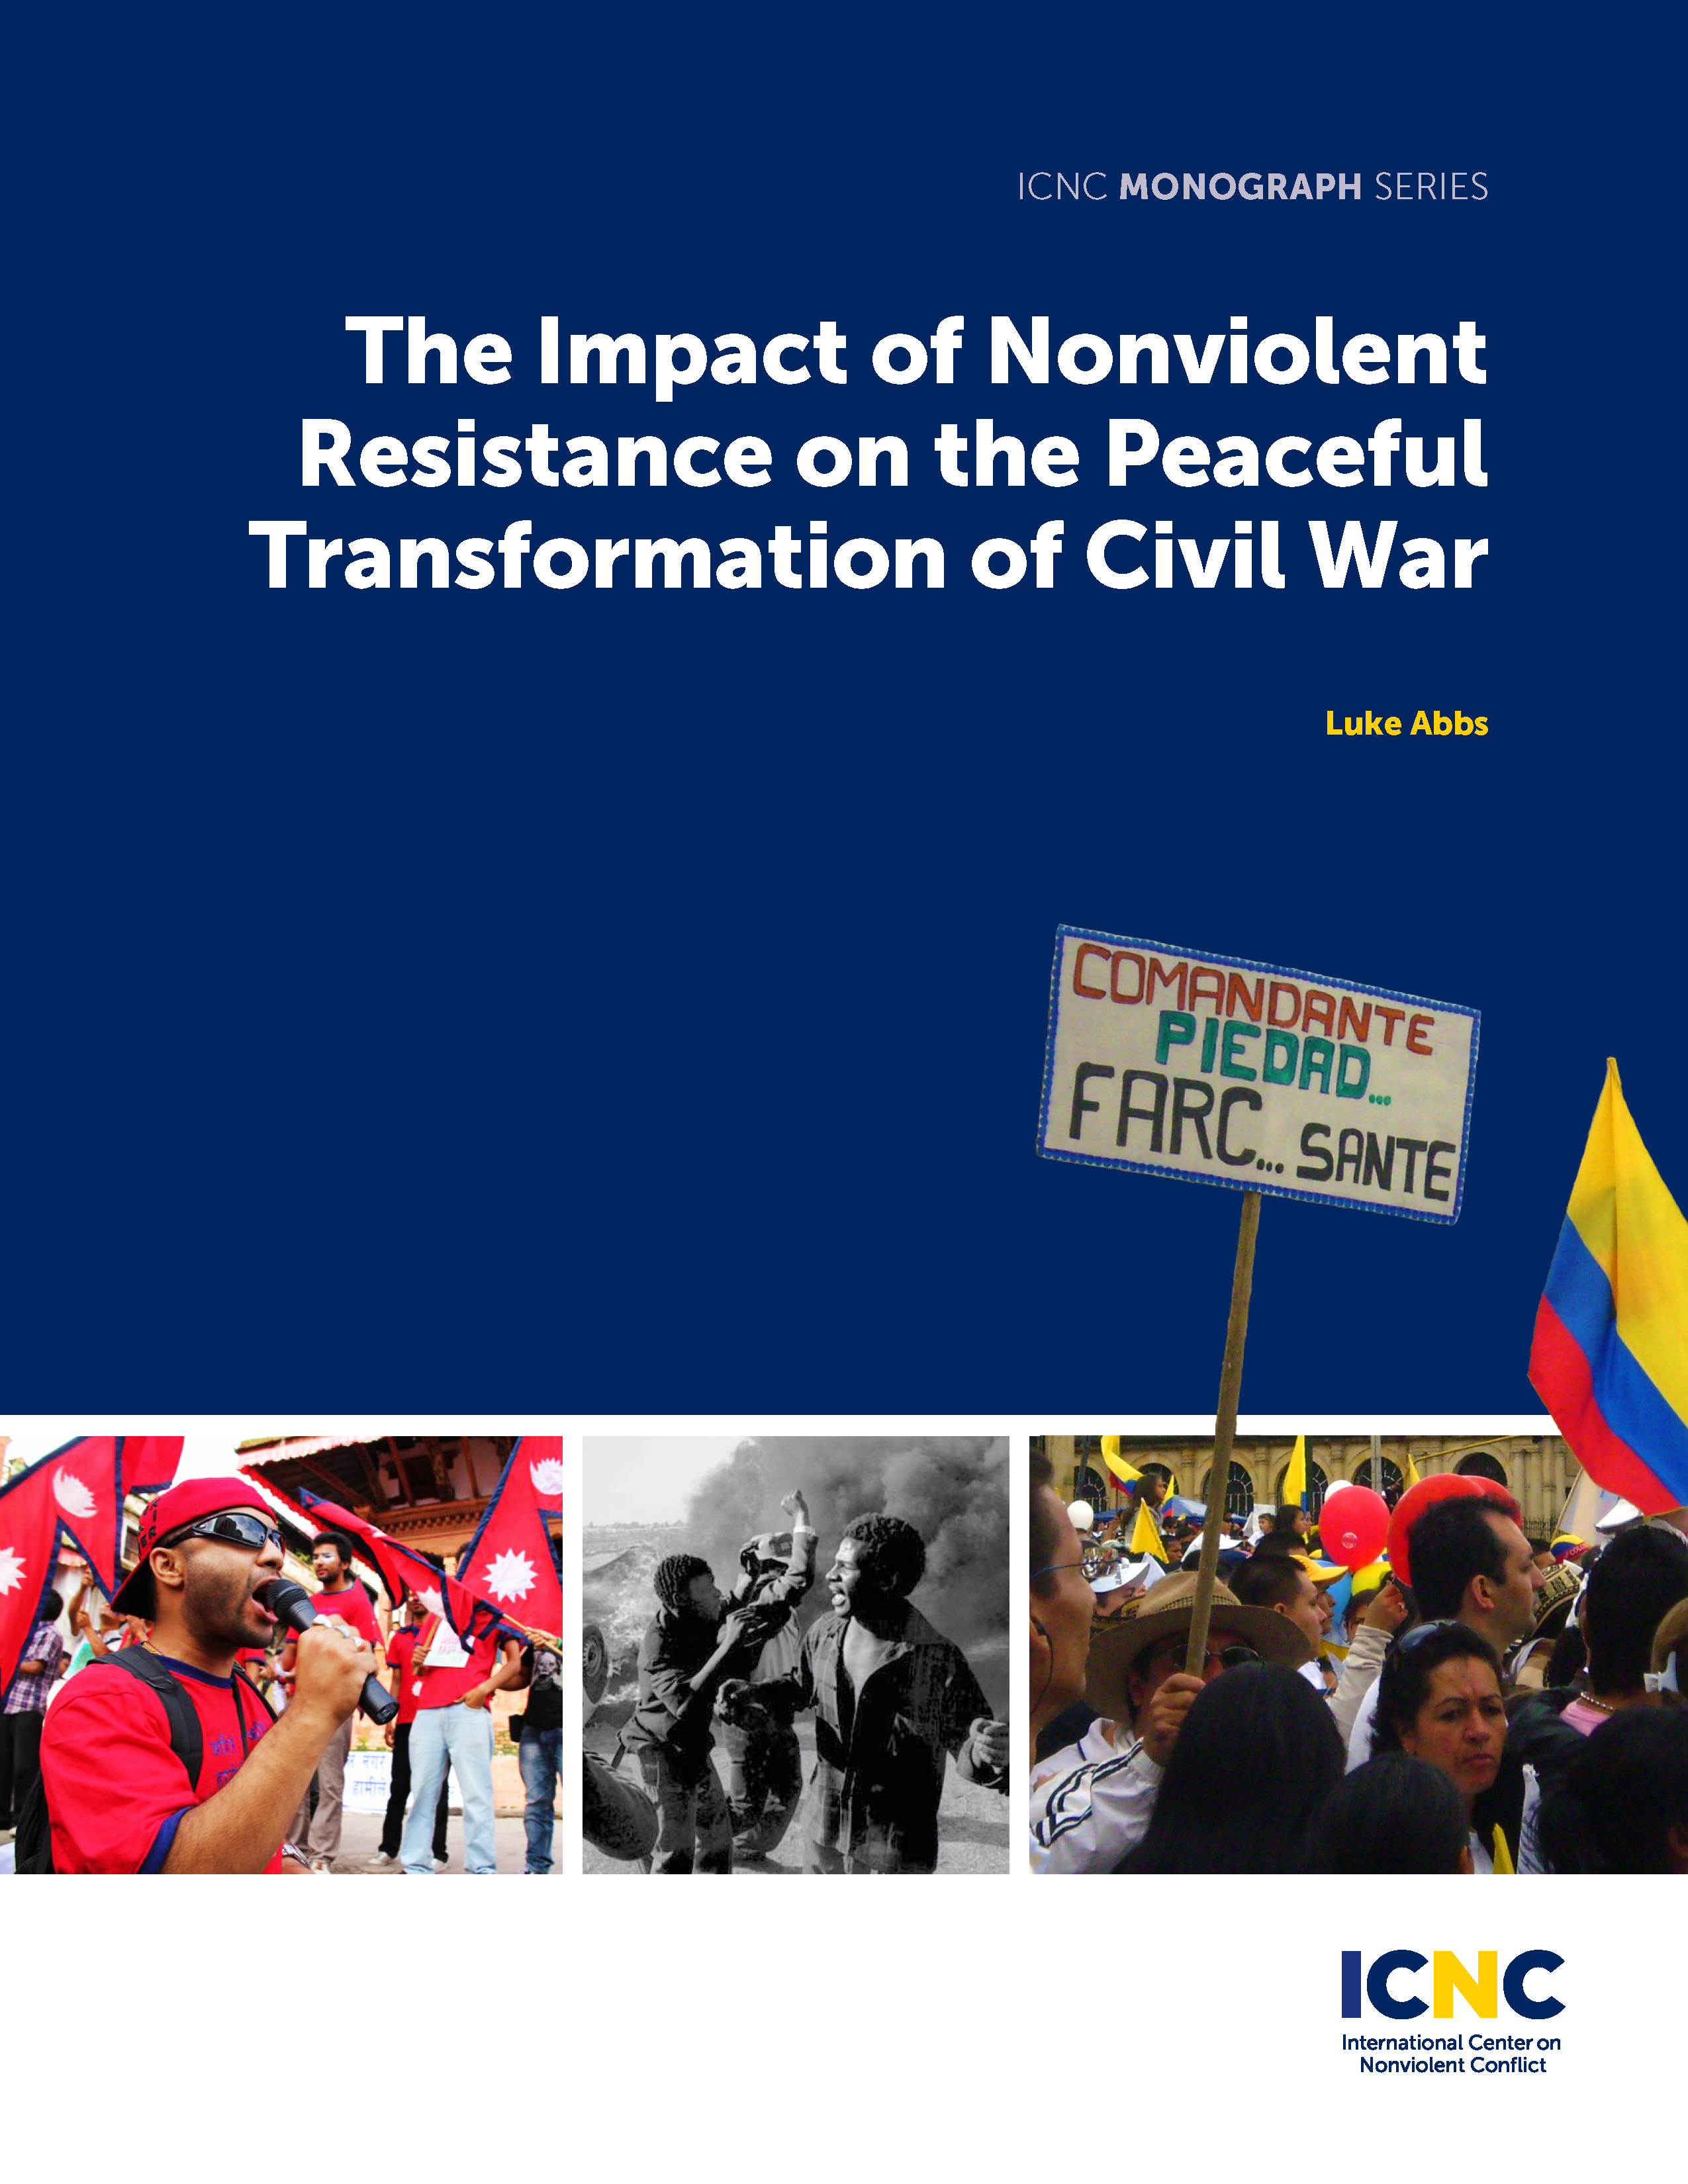 The Impact of Nonviolent Resistance on the Peaceful Transformation of Civil War